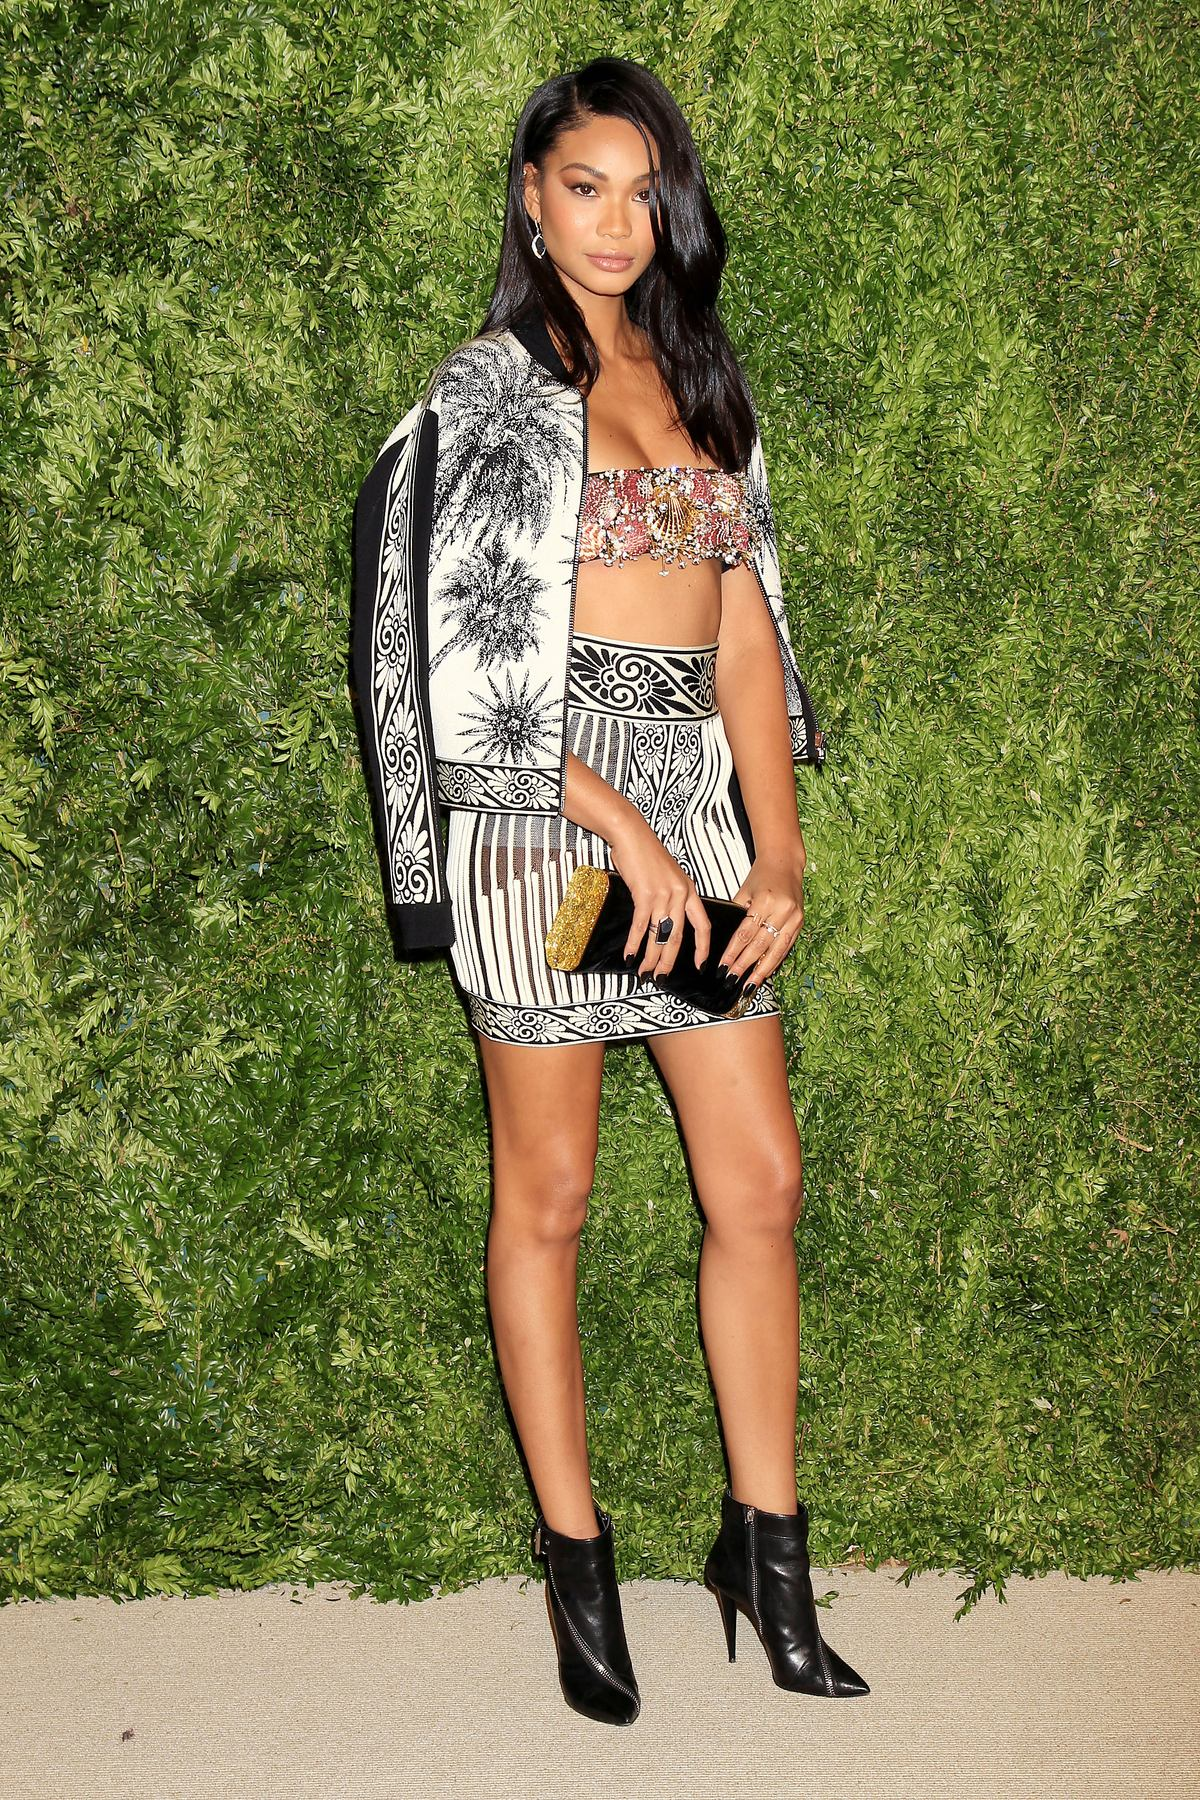 Chanel Iman at The Twelfth Annual CFDA/Vouge Fashion Fund Awards-2